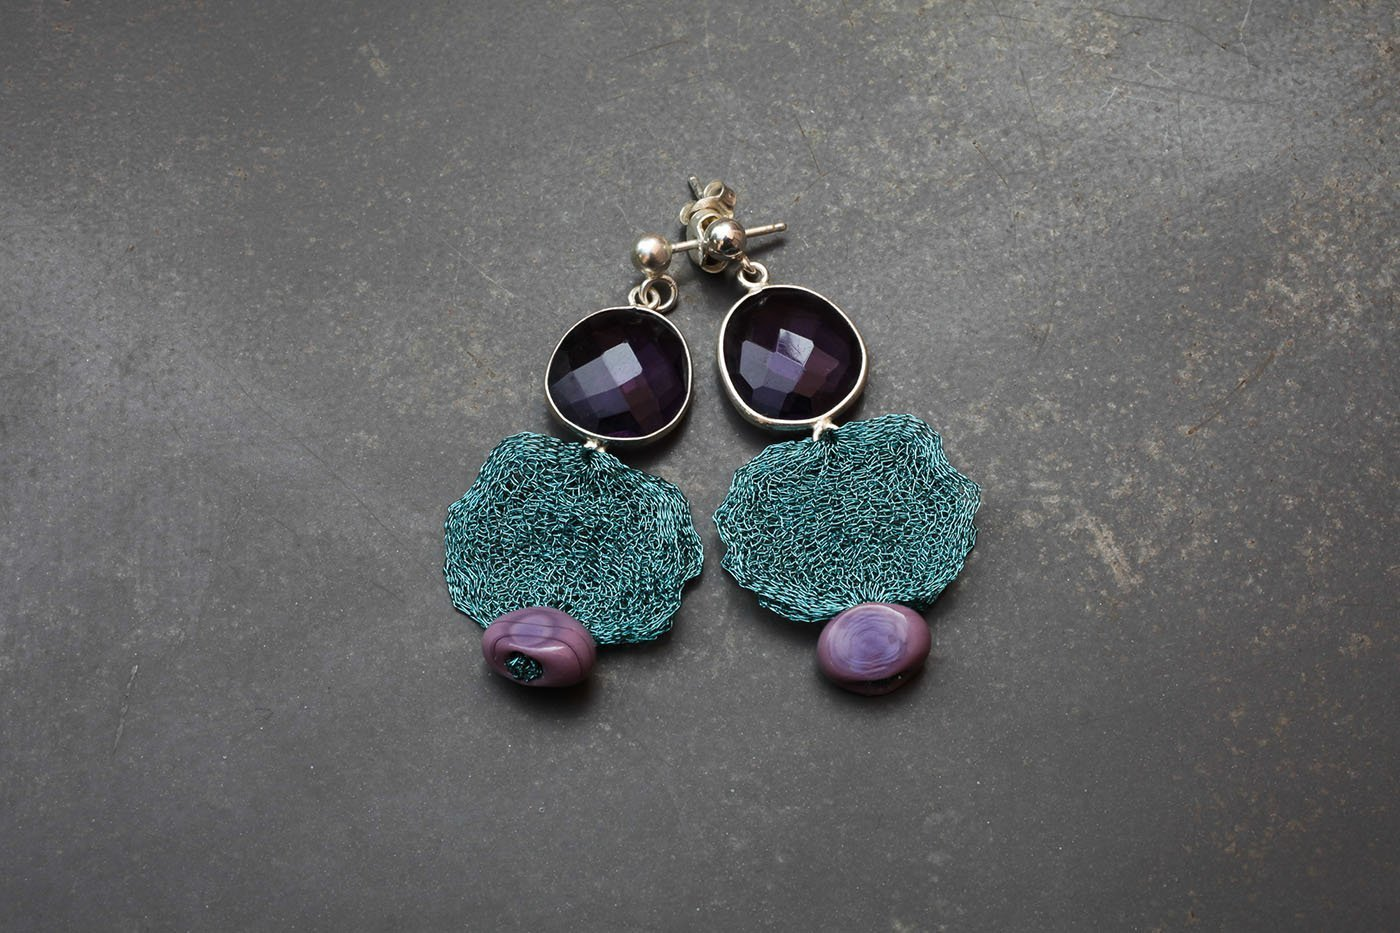 gifts nepal to send earring s earrings silver amethyst jewelry stone earning